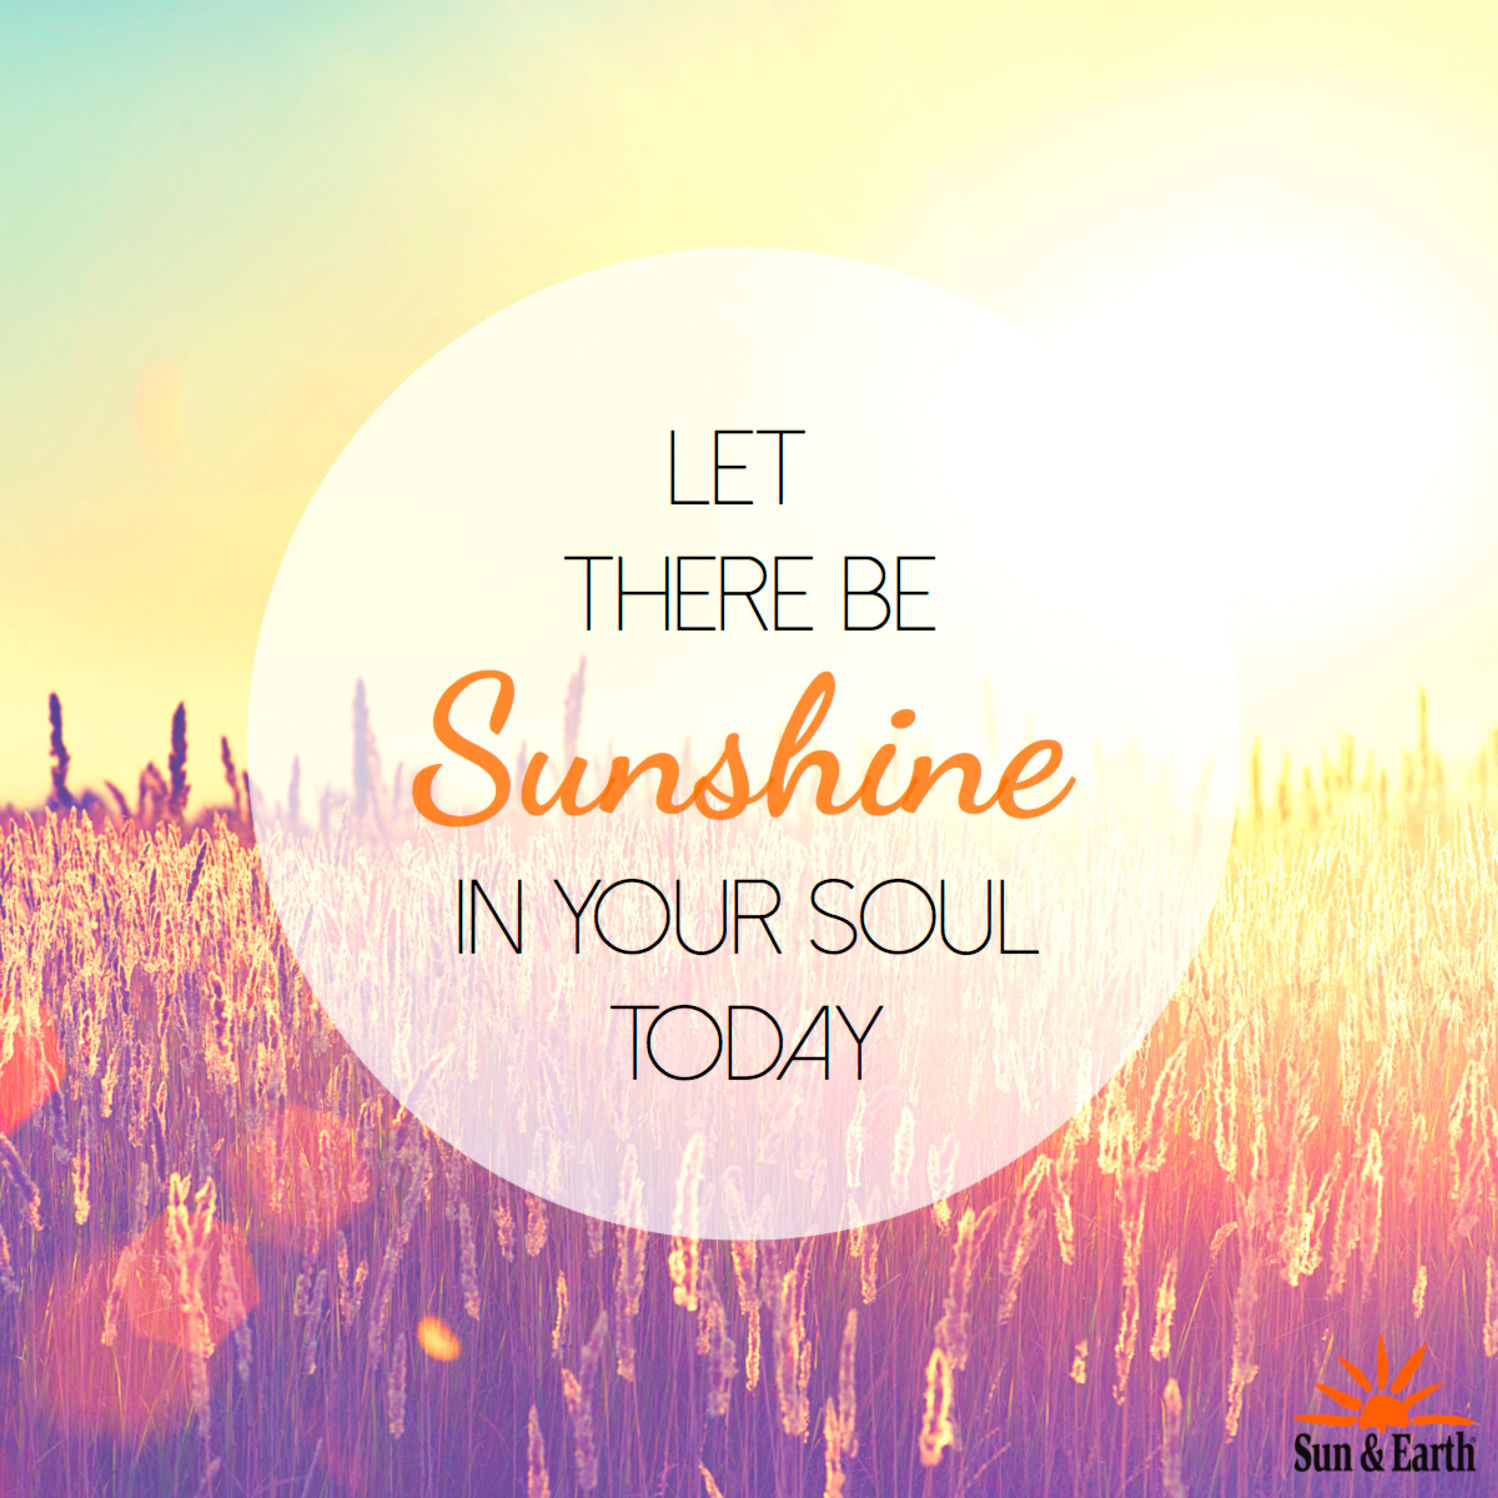 Quotes Morning: Sunshine In Your Soul Pictures, Photos, And Images For